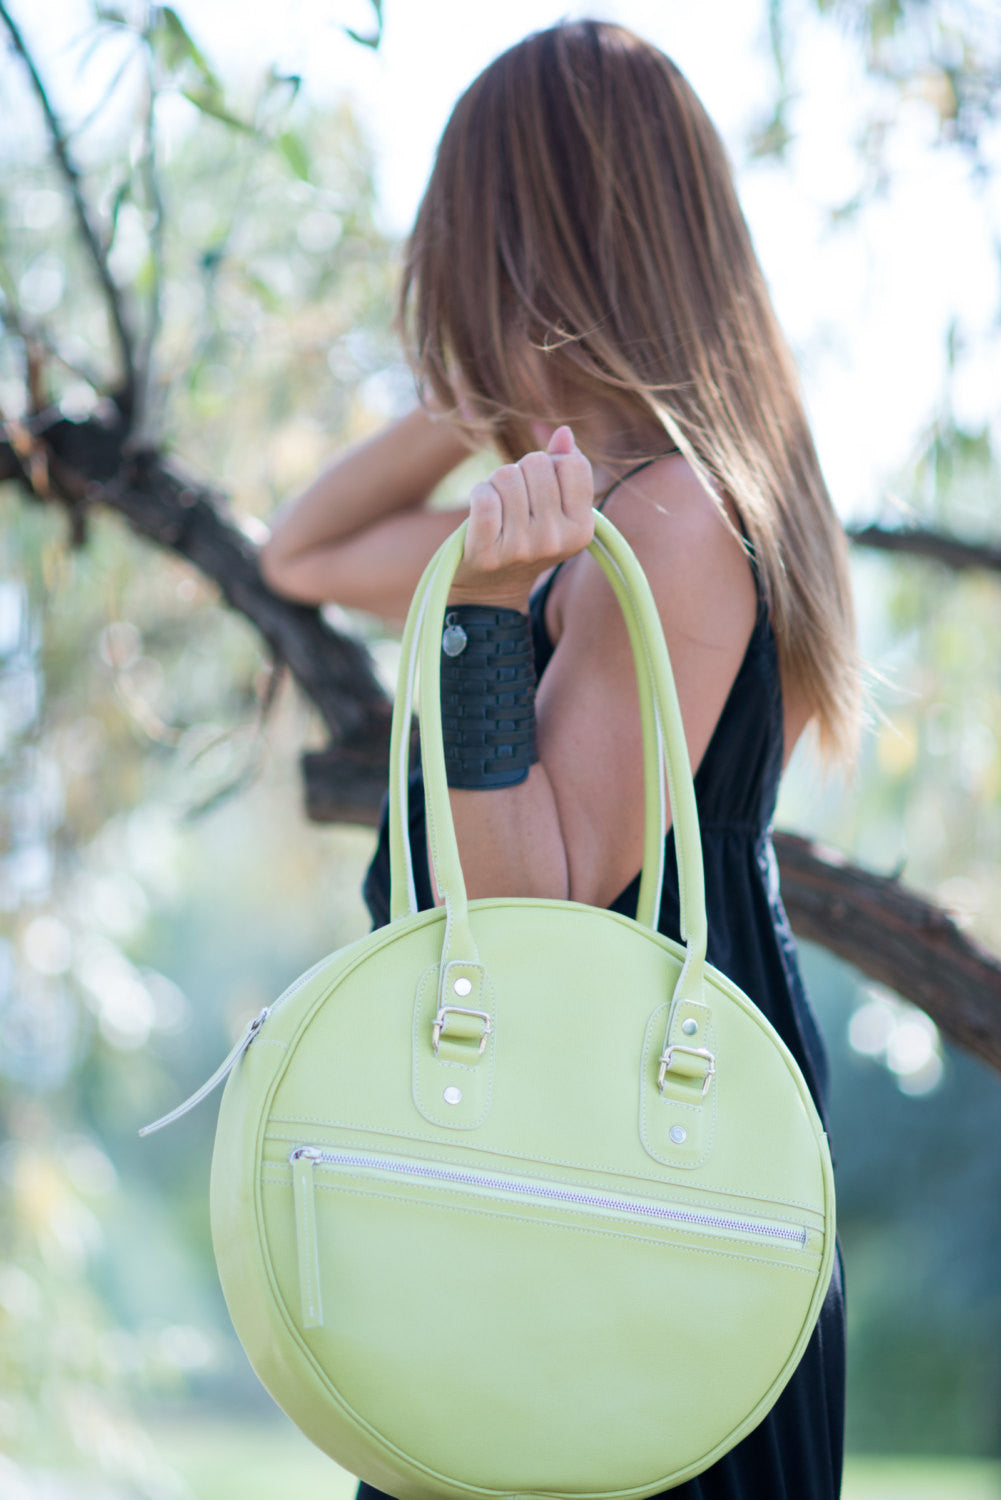 Lemon Green Leather Tote Bag, Leather Handbag, Leather satchel, Leather Hobo Bag, Leather Bucket Bag